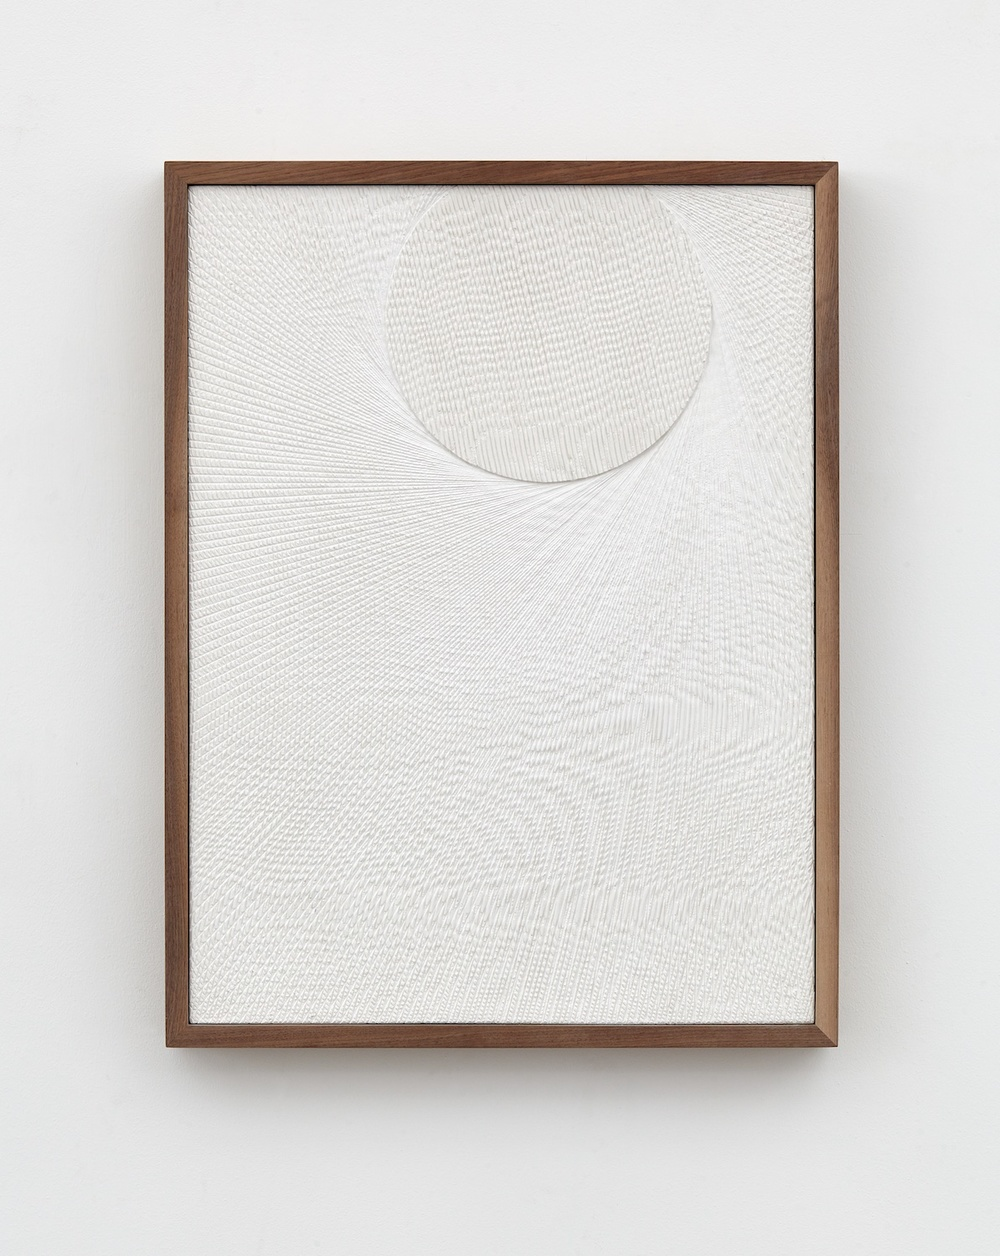 Anthony Pearson  Untitled (Etched Plaster)  2015 Hydrocal in walnut frame 24 ½h x 18 ½w x 2d in AP369